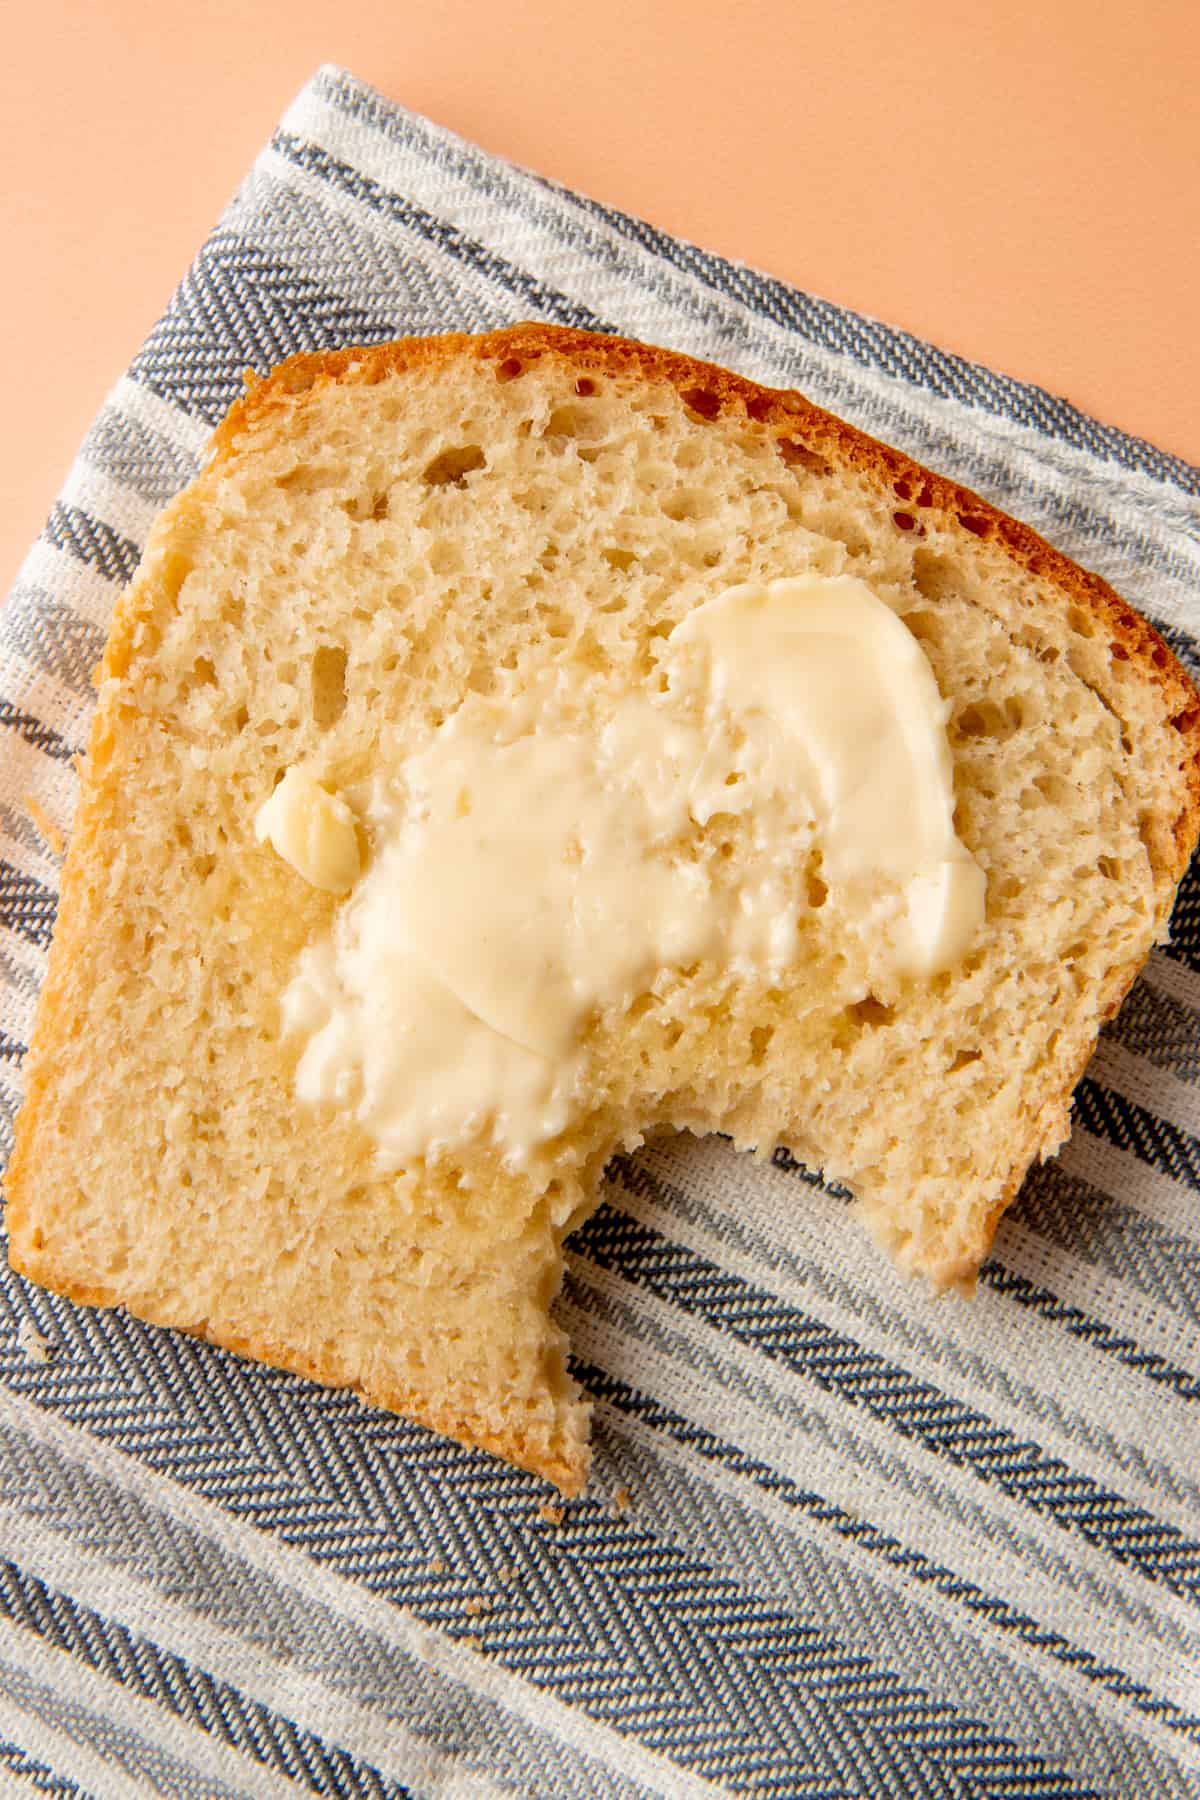 A bitten piece of bread with butter sits on a cloth napkin.